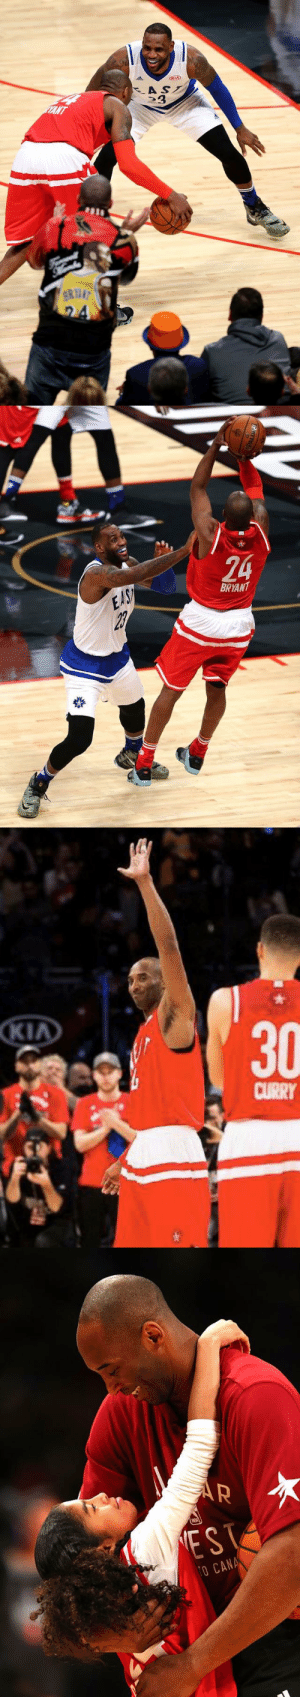 4 years ago today, Kobe played in his final All-Star game. #MambaForever https://t.co/VFUEGpxEIm: 4 years ago today, Kobe played in his final All-Star game. #MambaForever https://t.co/VFUEGpxEIm